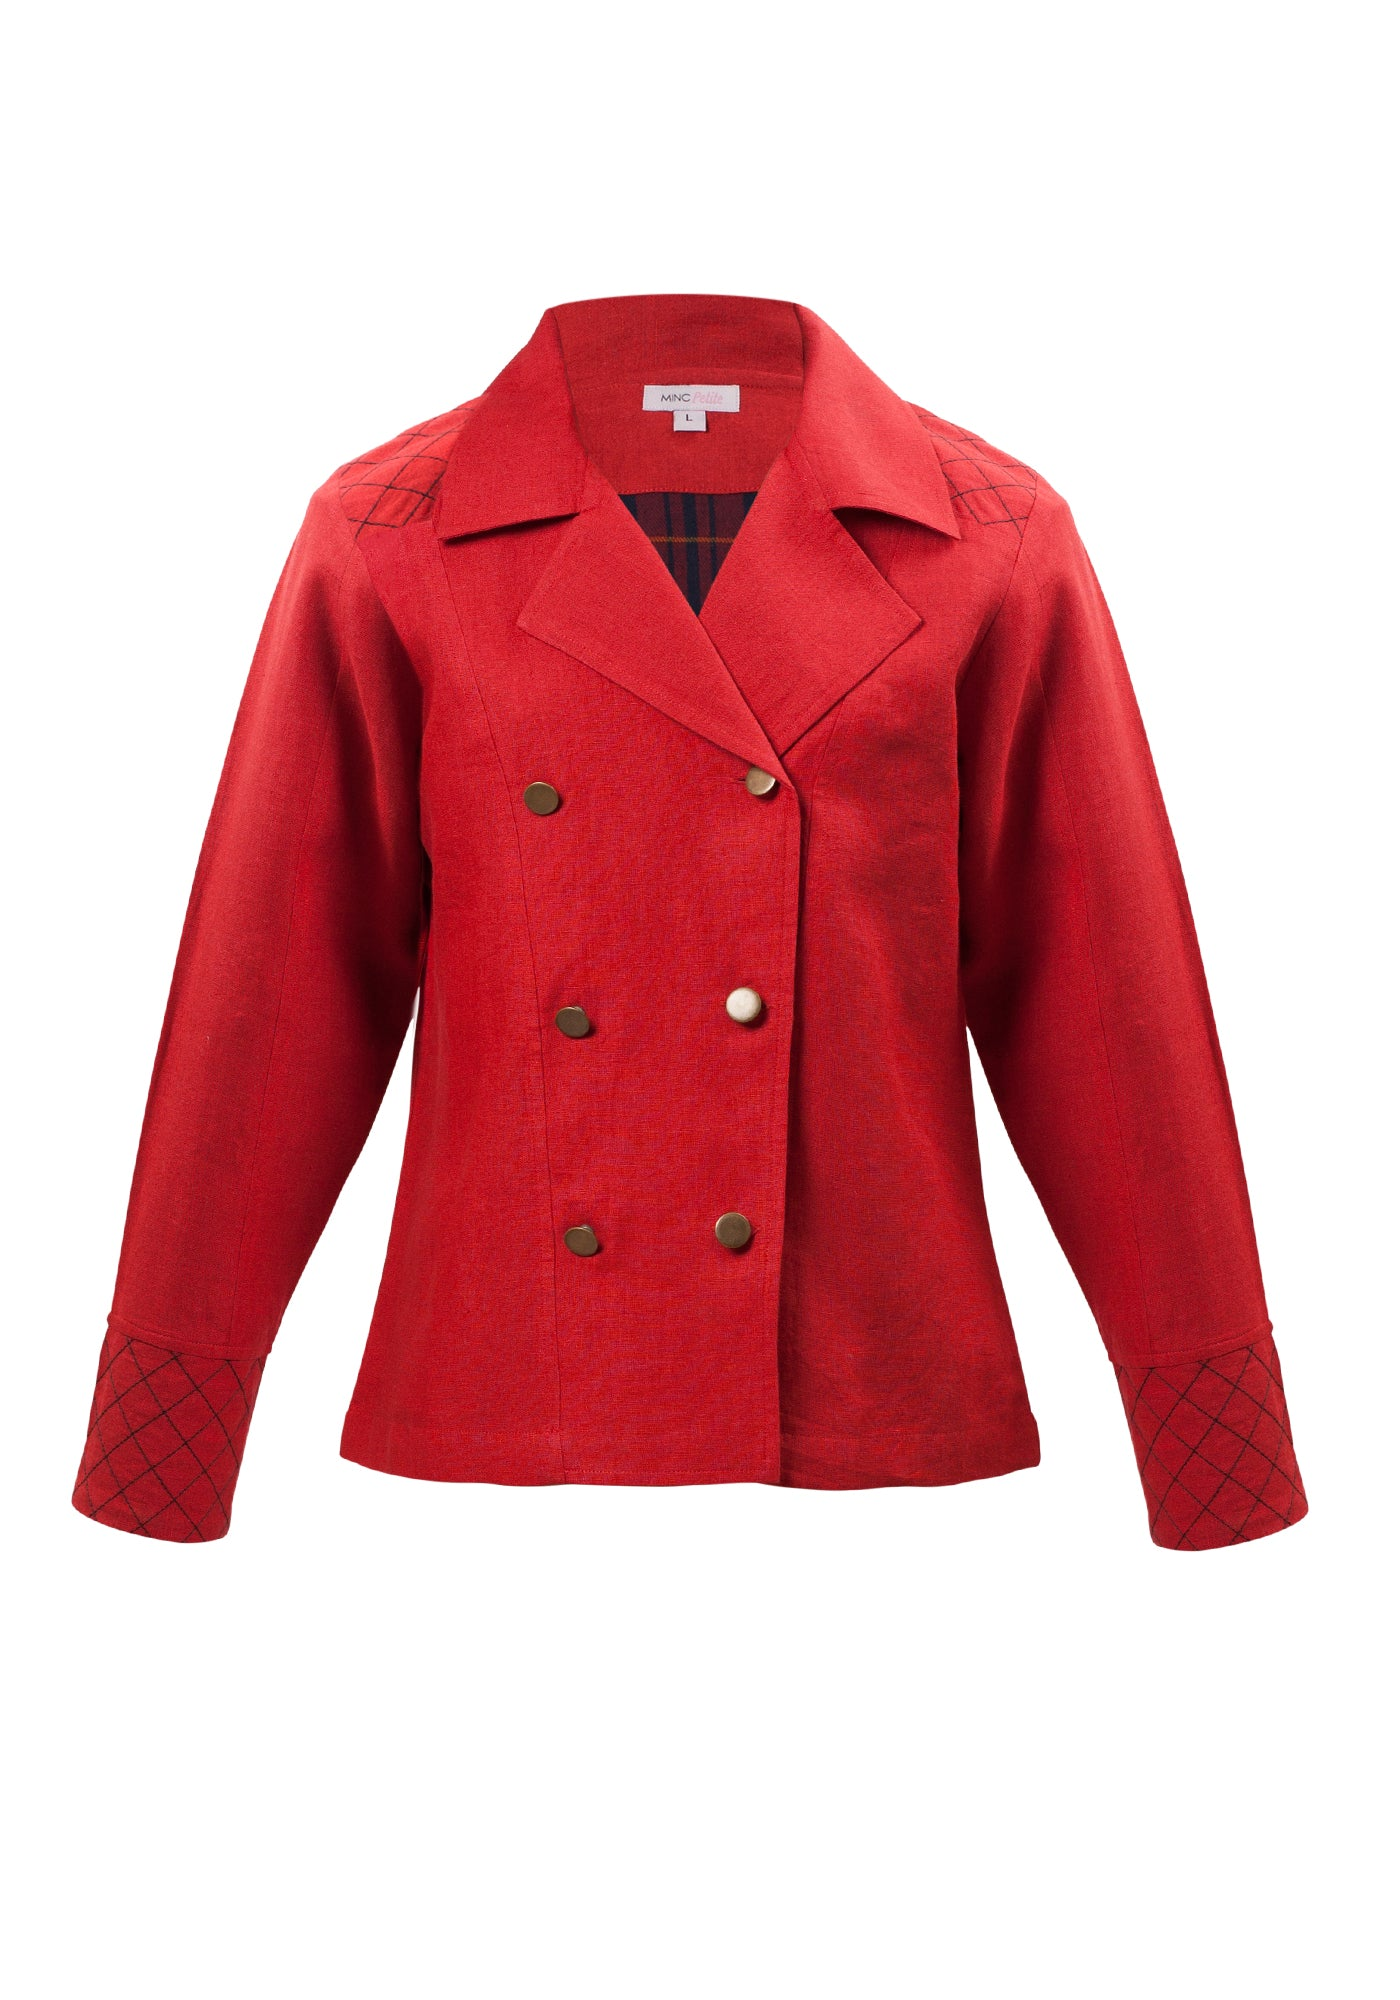 Little Toy Soldier Jacket in Red Linen - MINC ecofashion